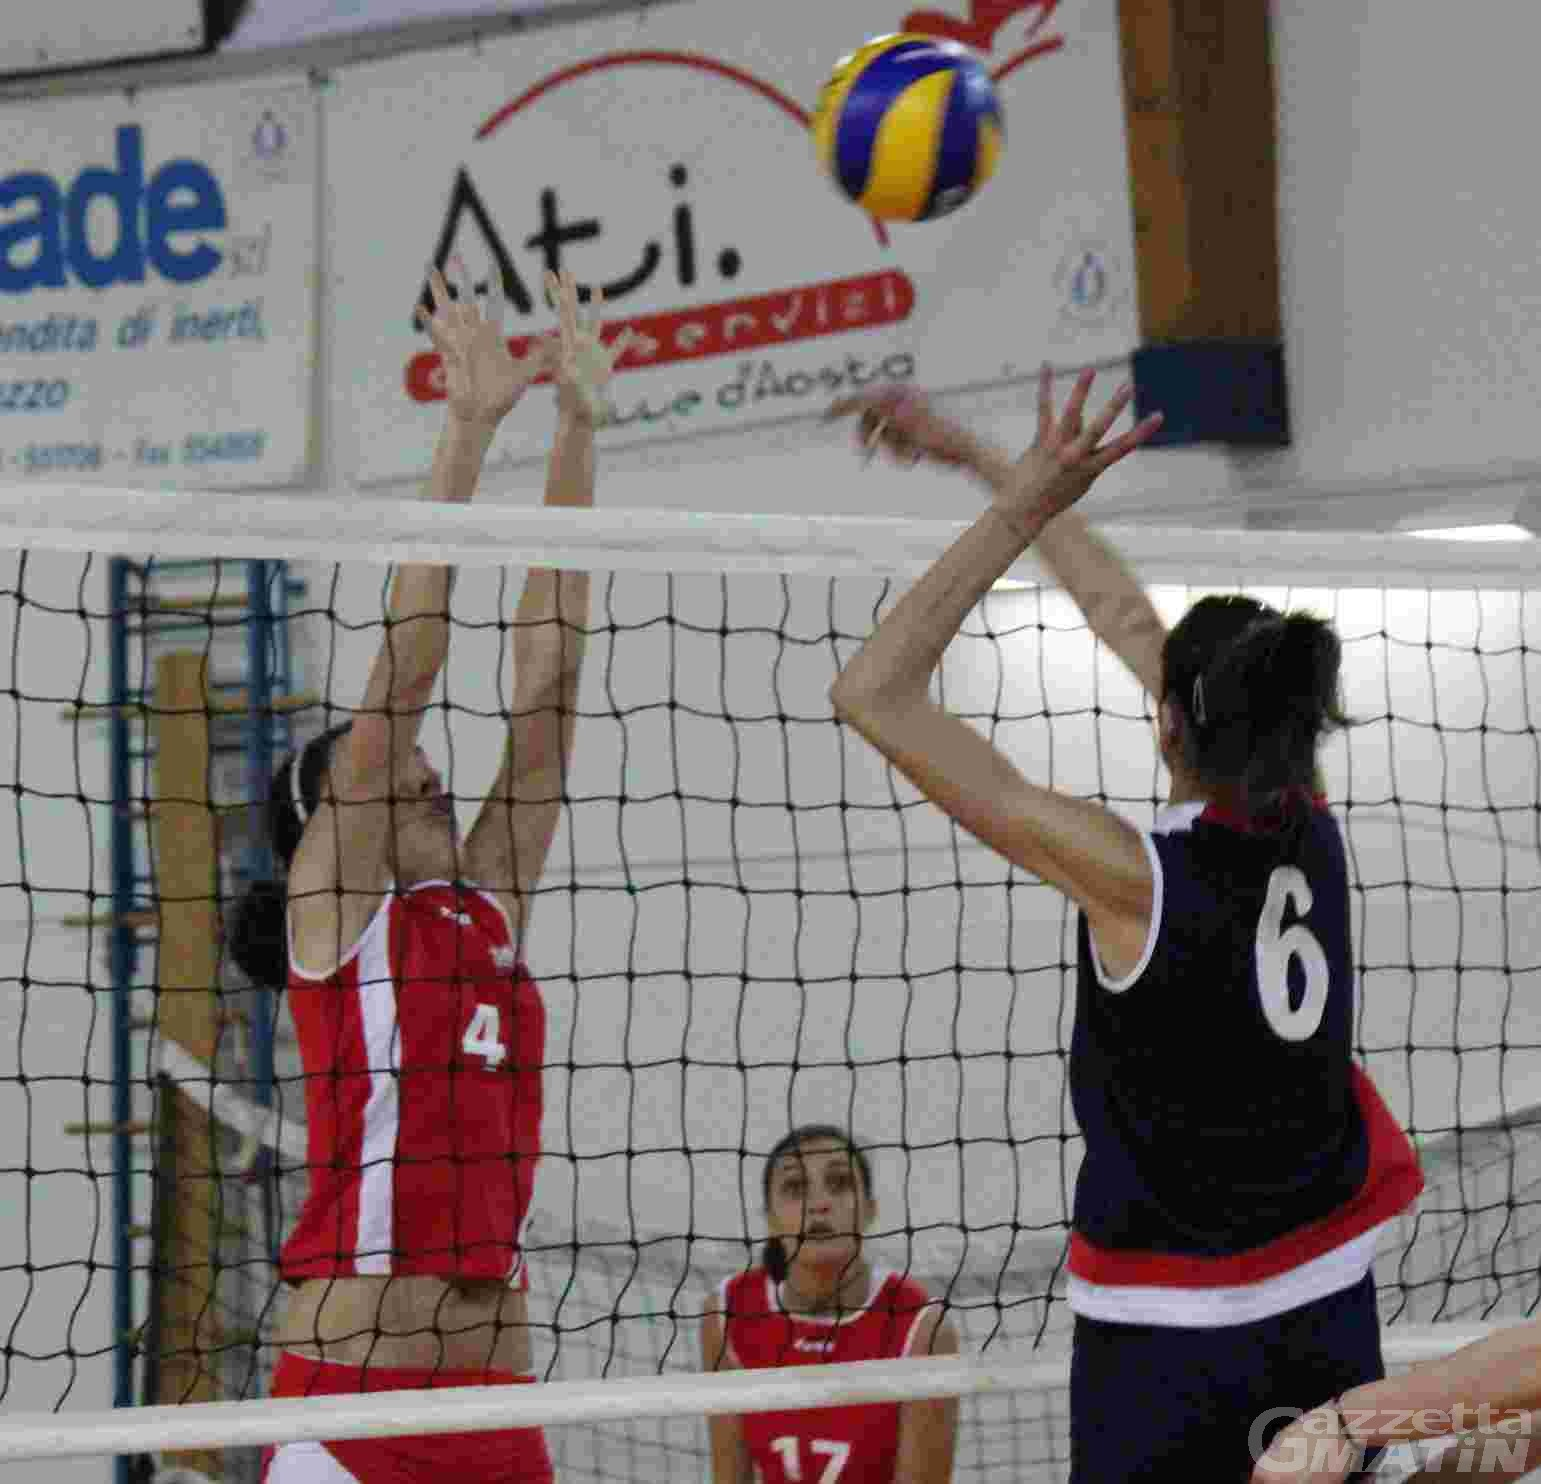 Volley: crollano Bruno Tex e Cogne Acciai Speciali